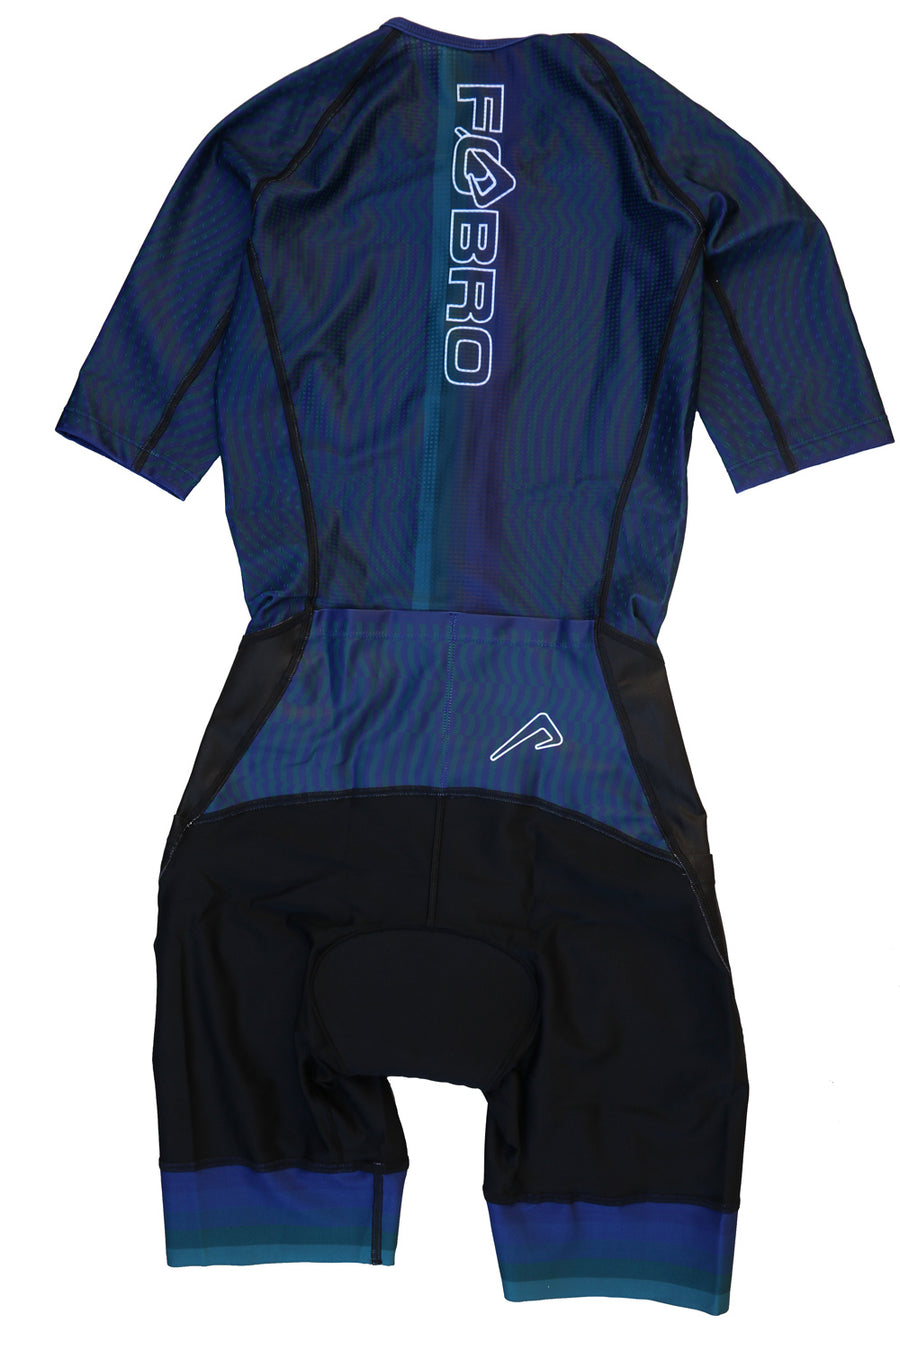 Men's Glitch Sleeved Tri Suit